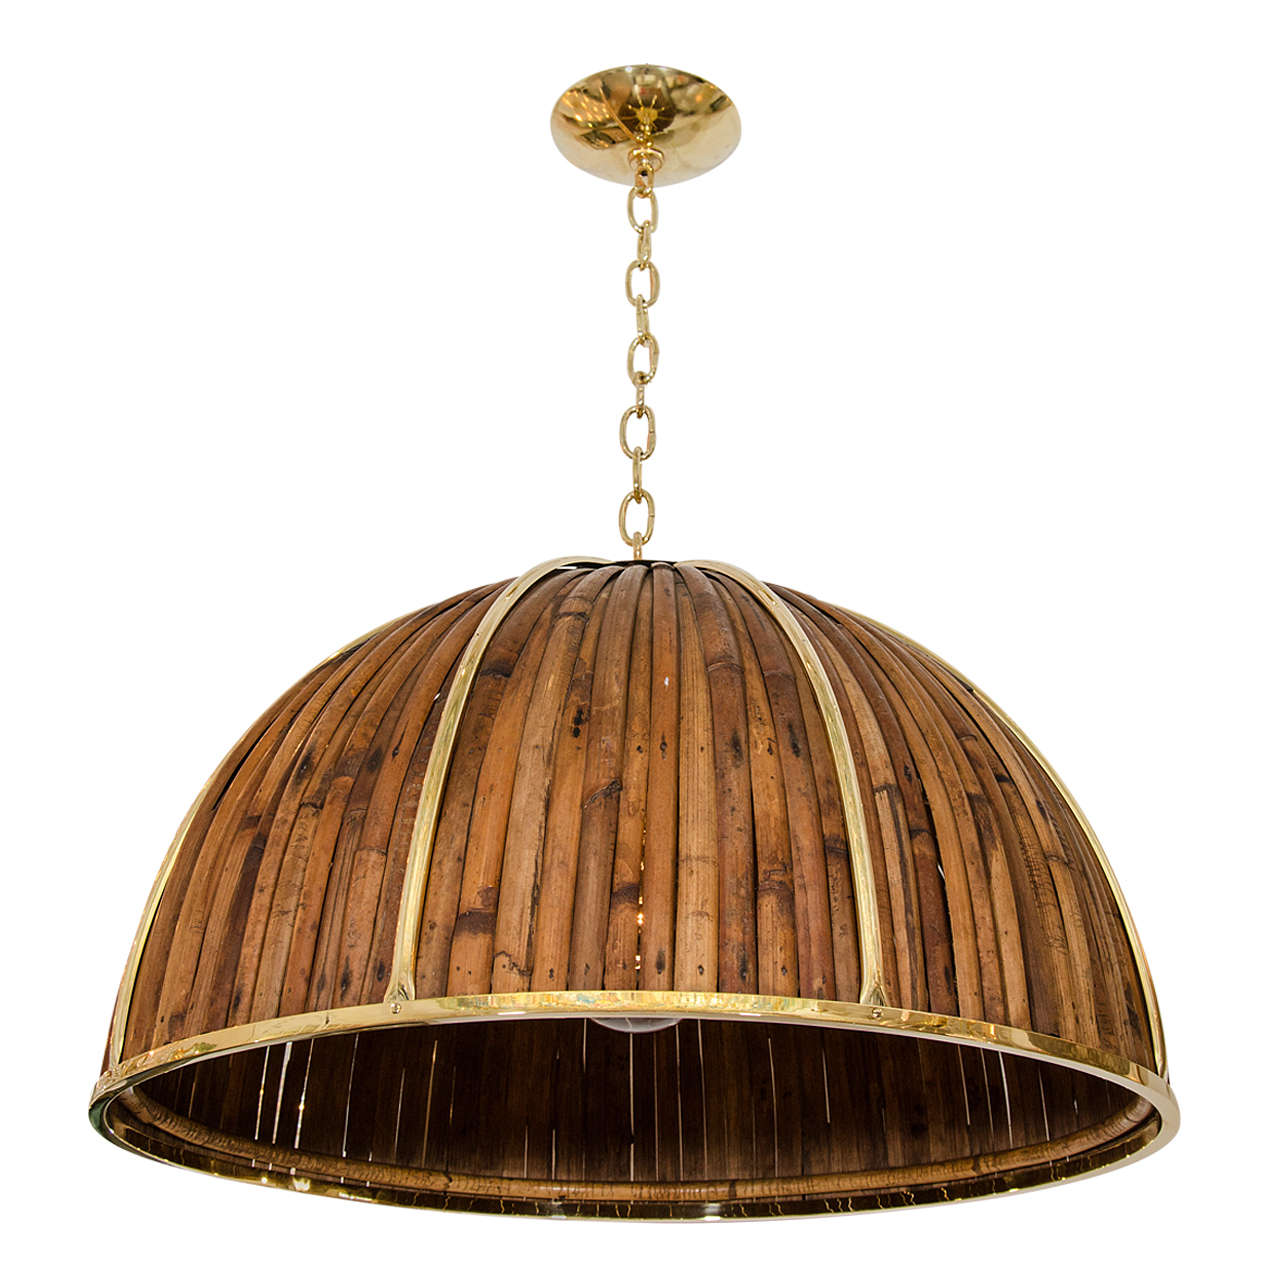 Bamboo And Brass Dome Form Pendant Fixture At 1stdibs